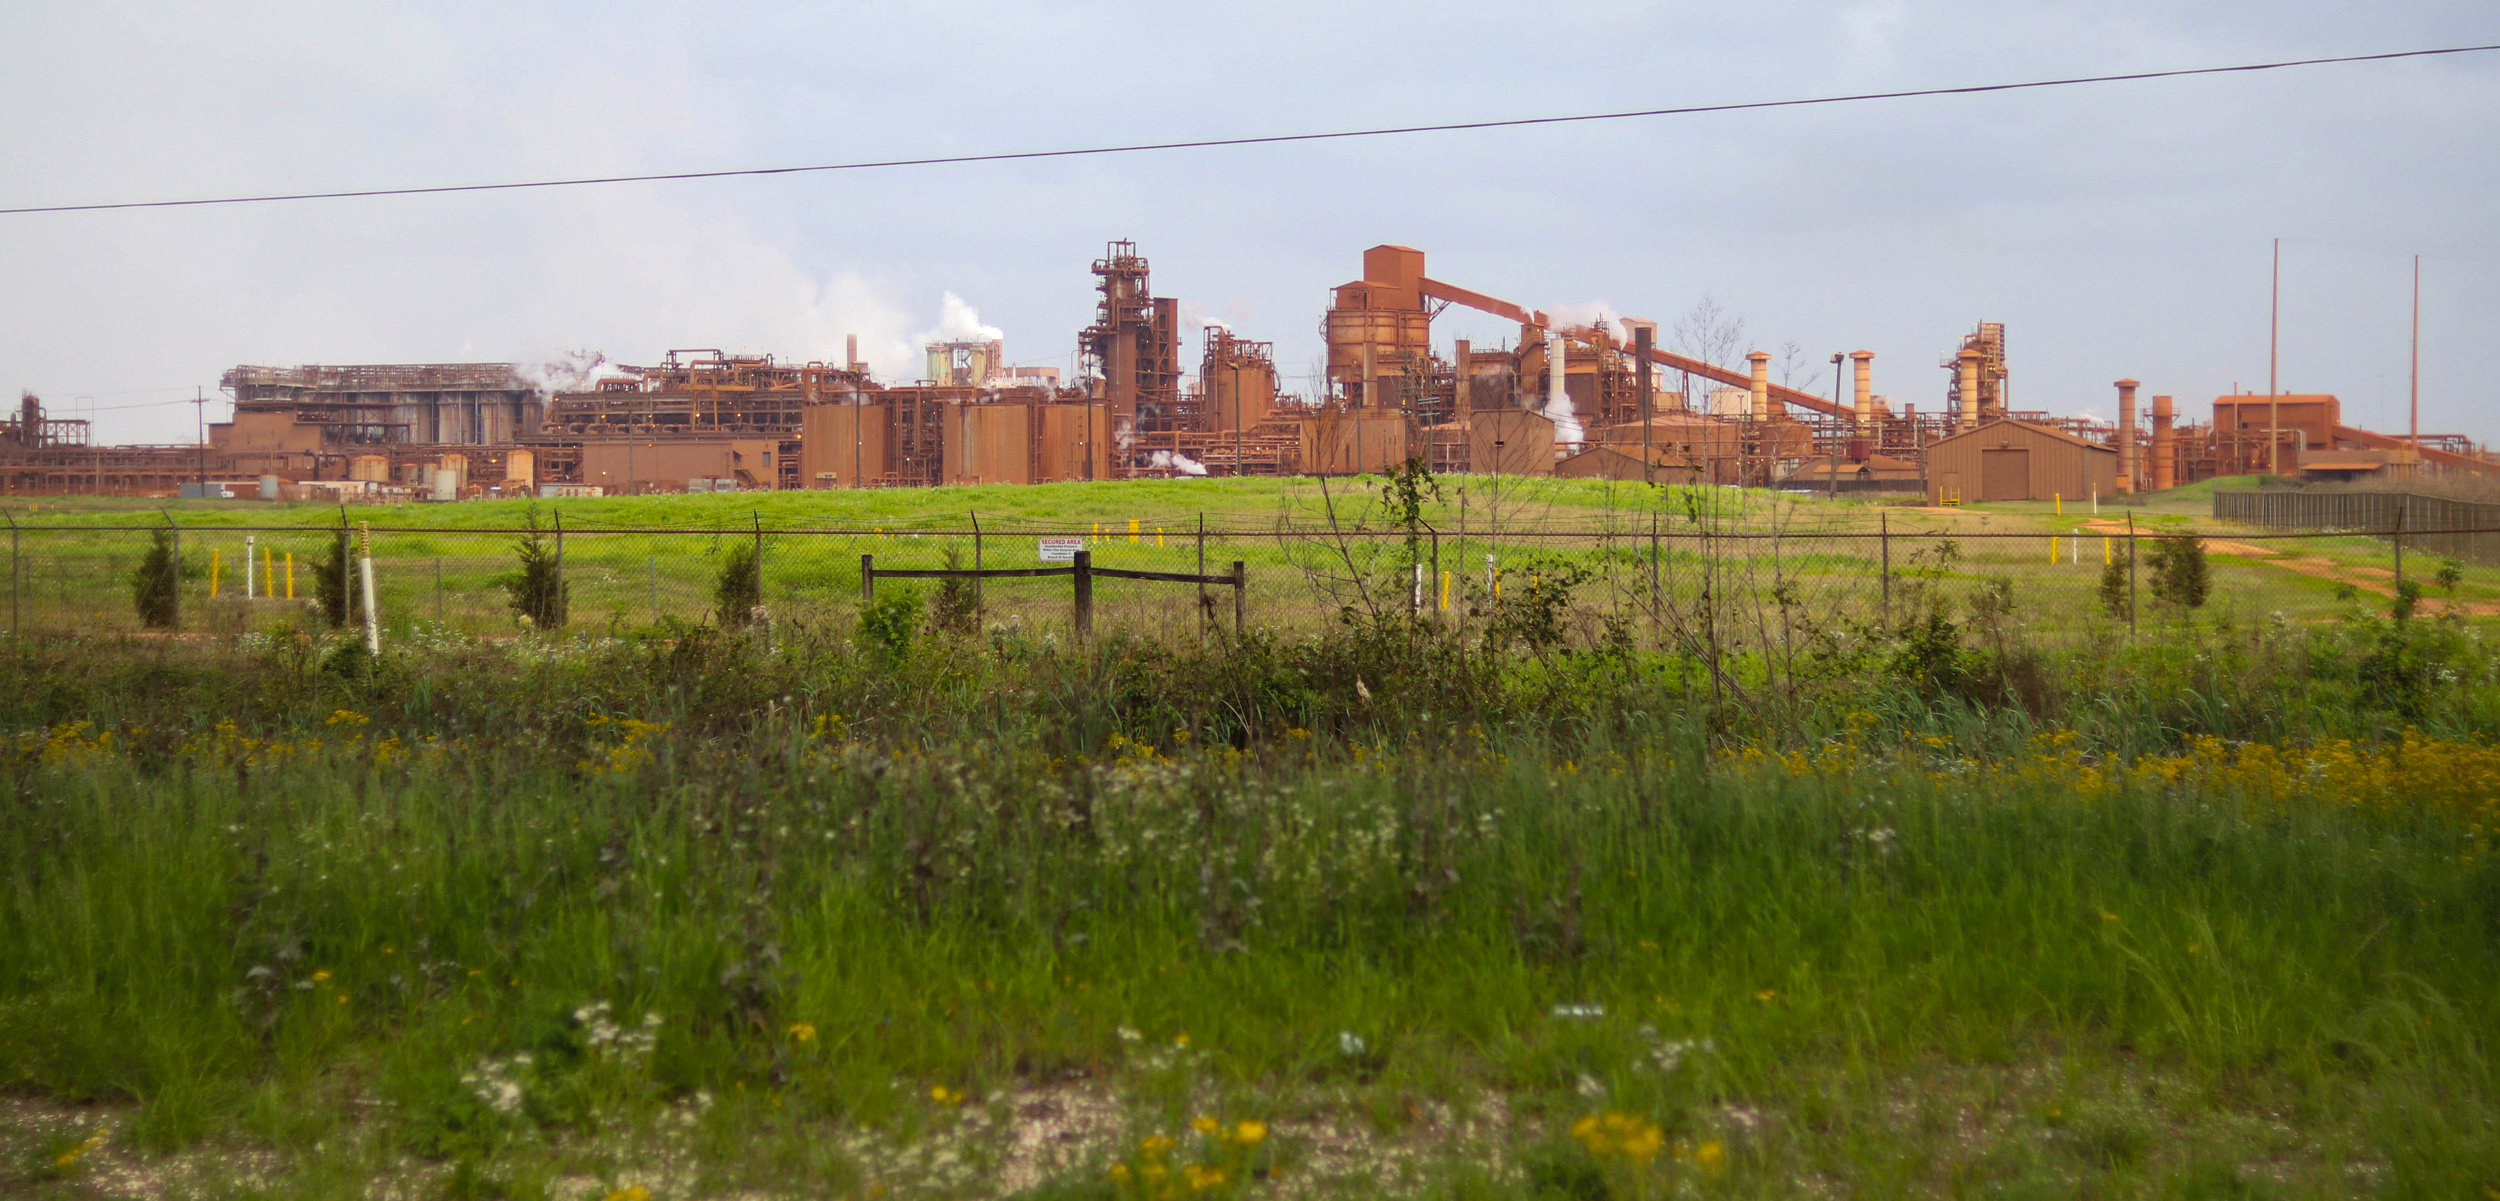 alumina refinery, St. James Parish, Louisiana